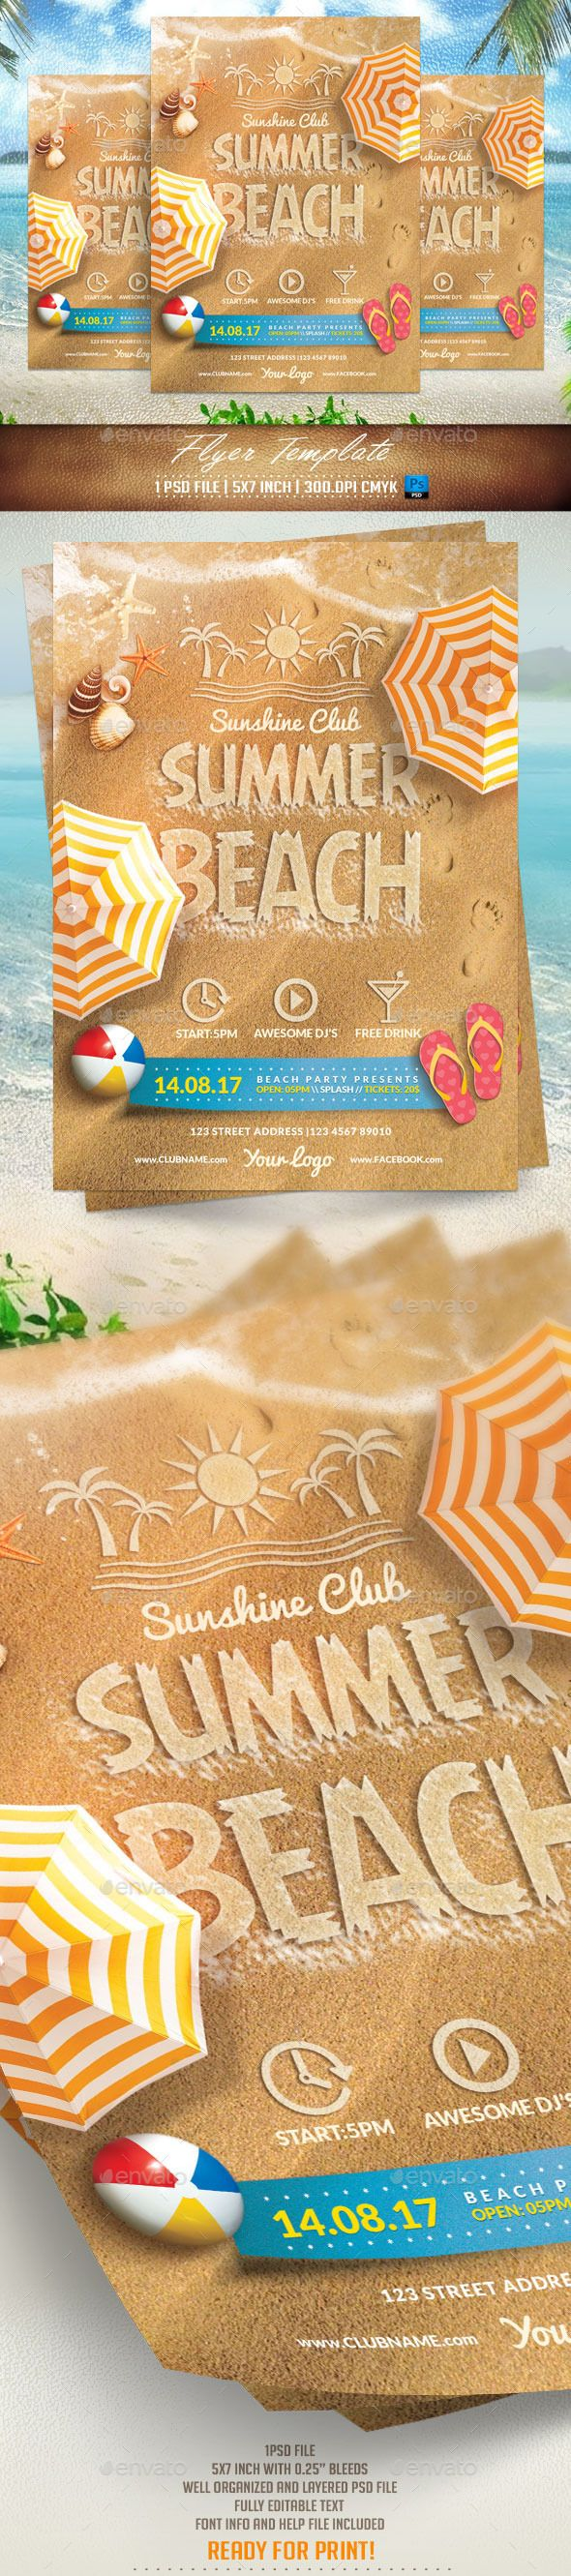 best ideas about event flyers flyer design summer beach flyer template